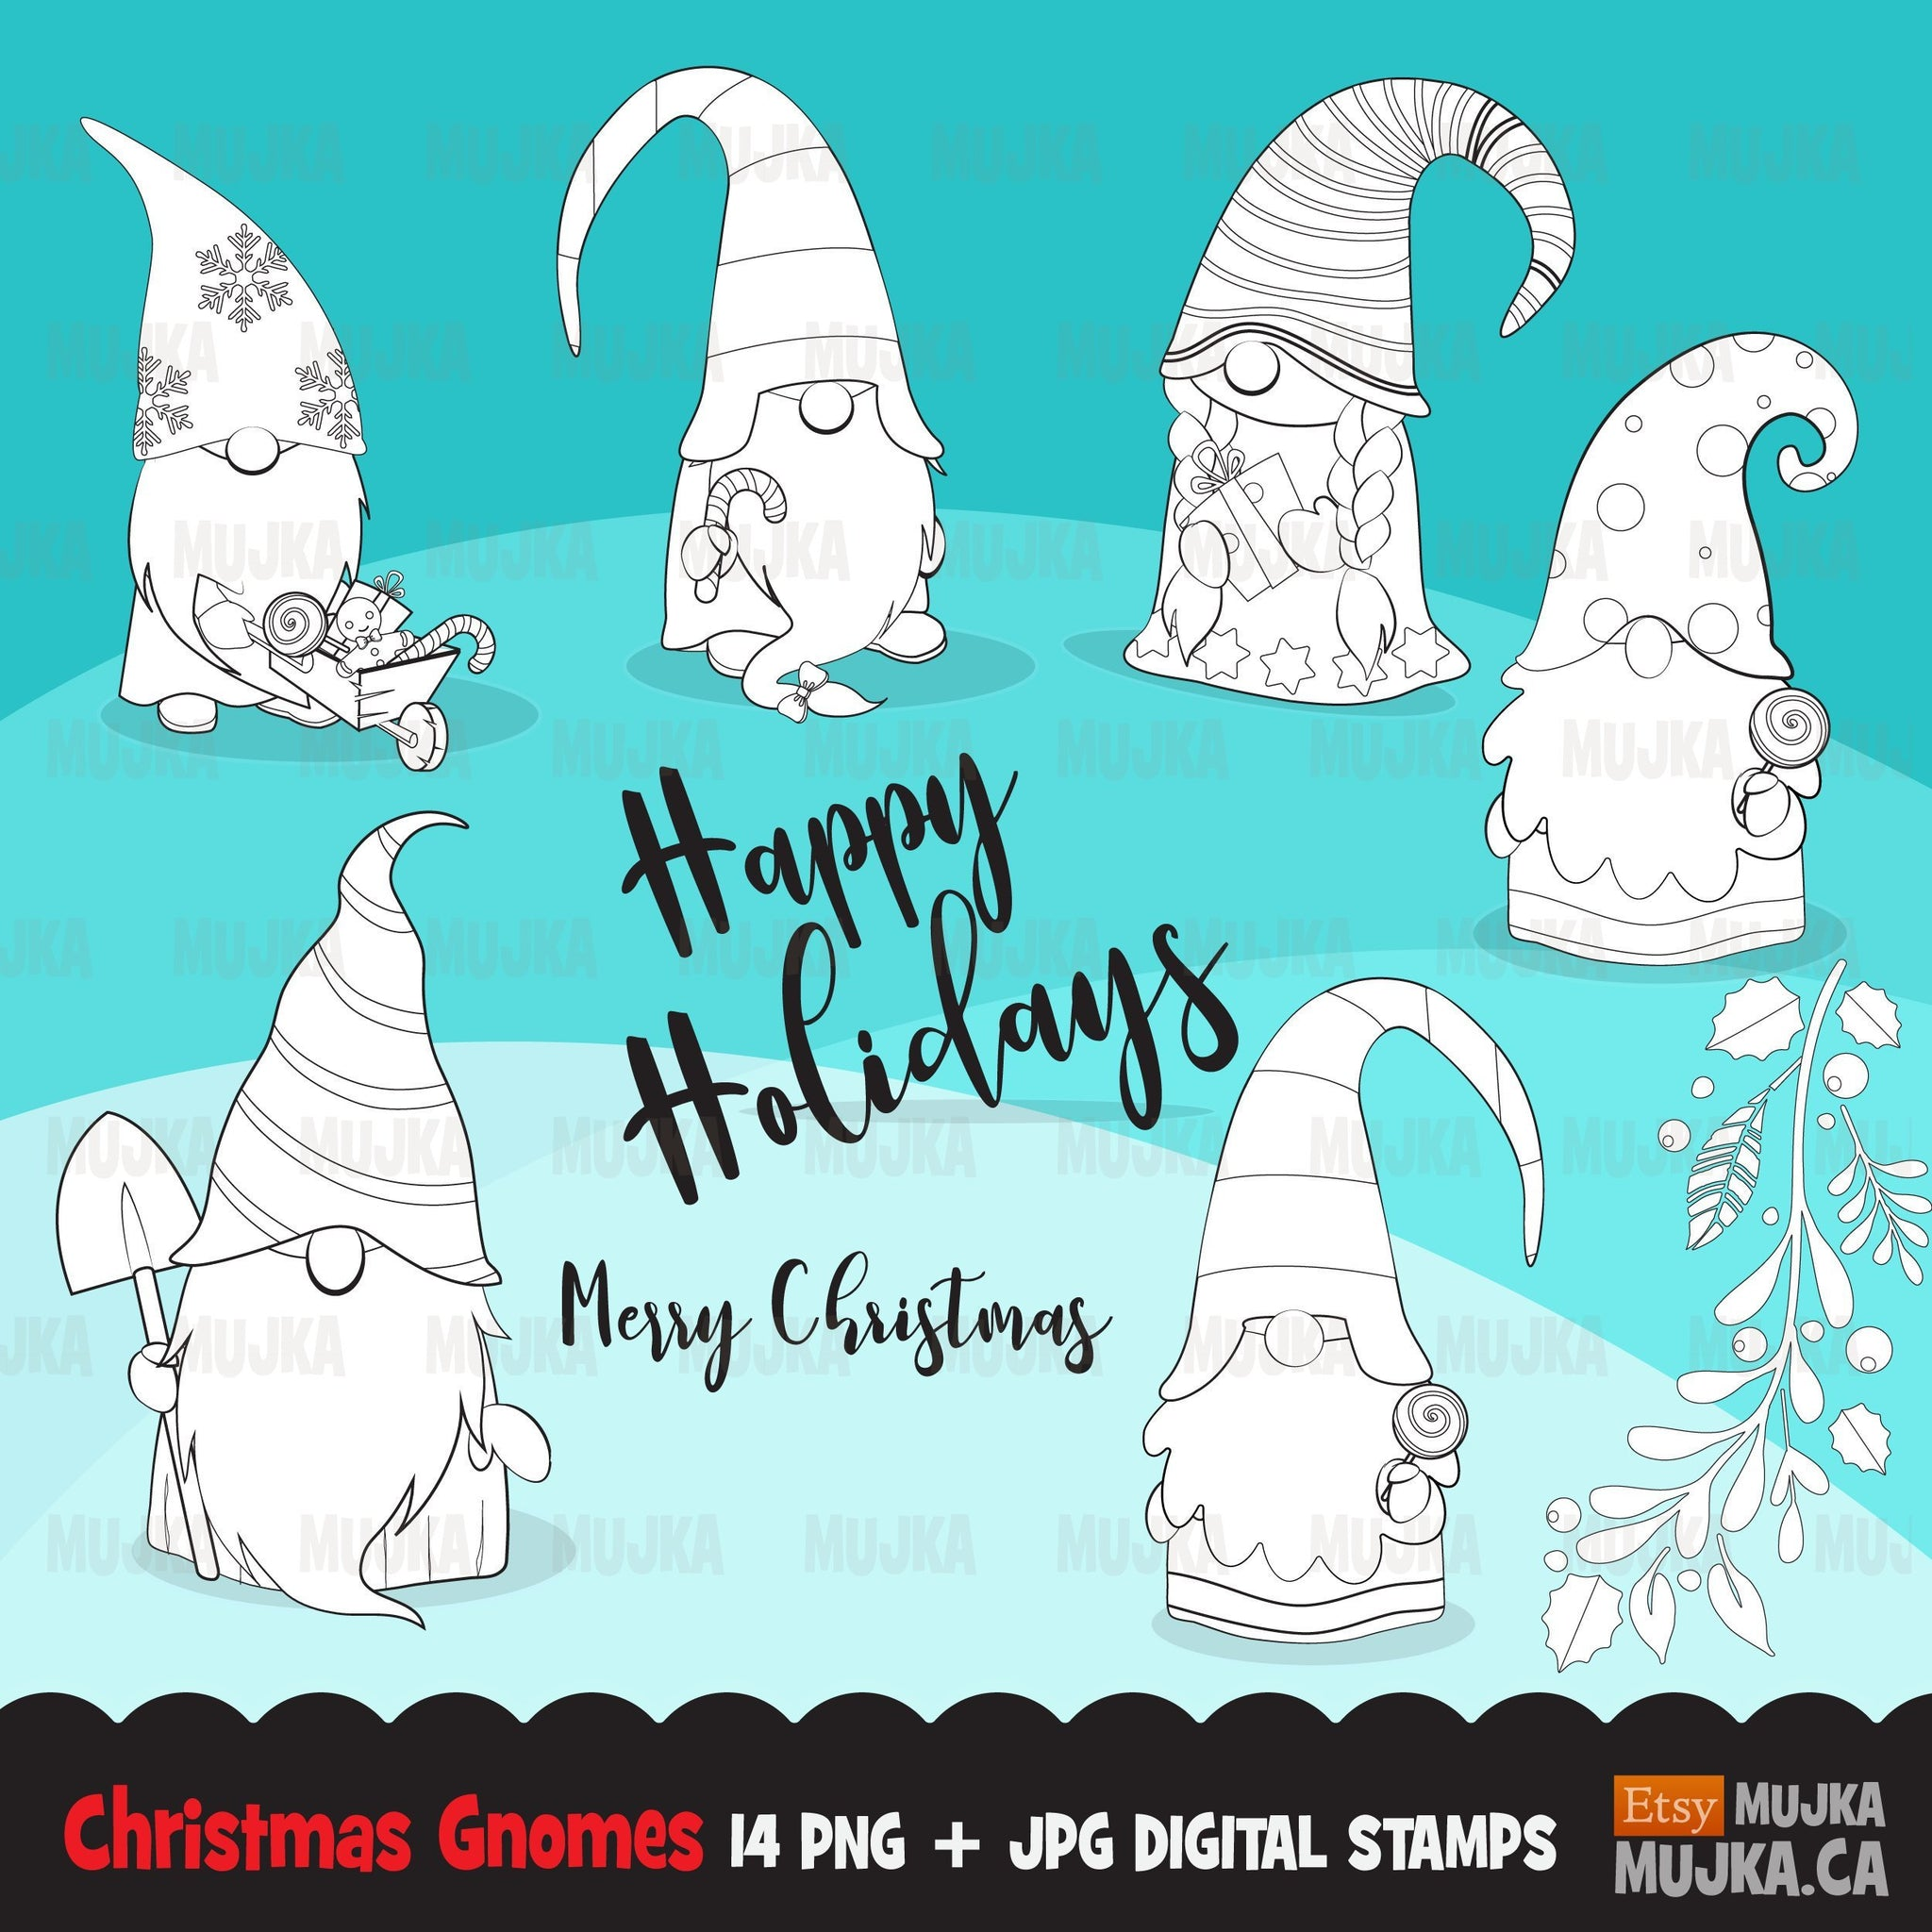 Christmas gnomes Digital stamps